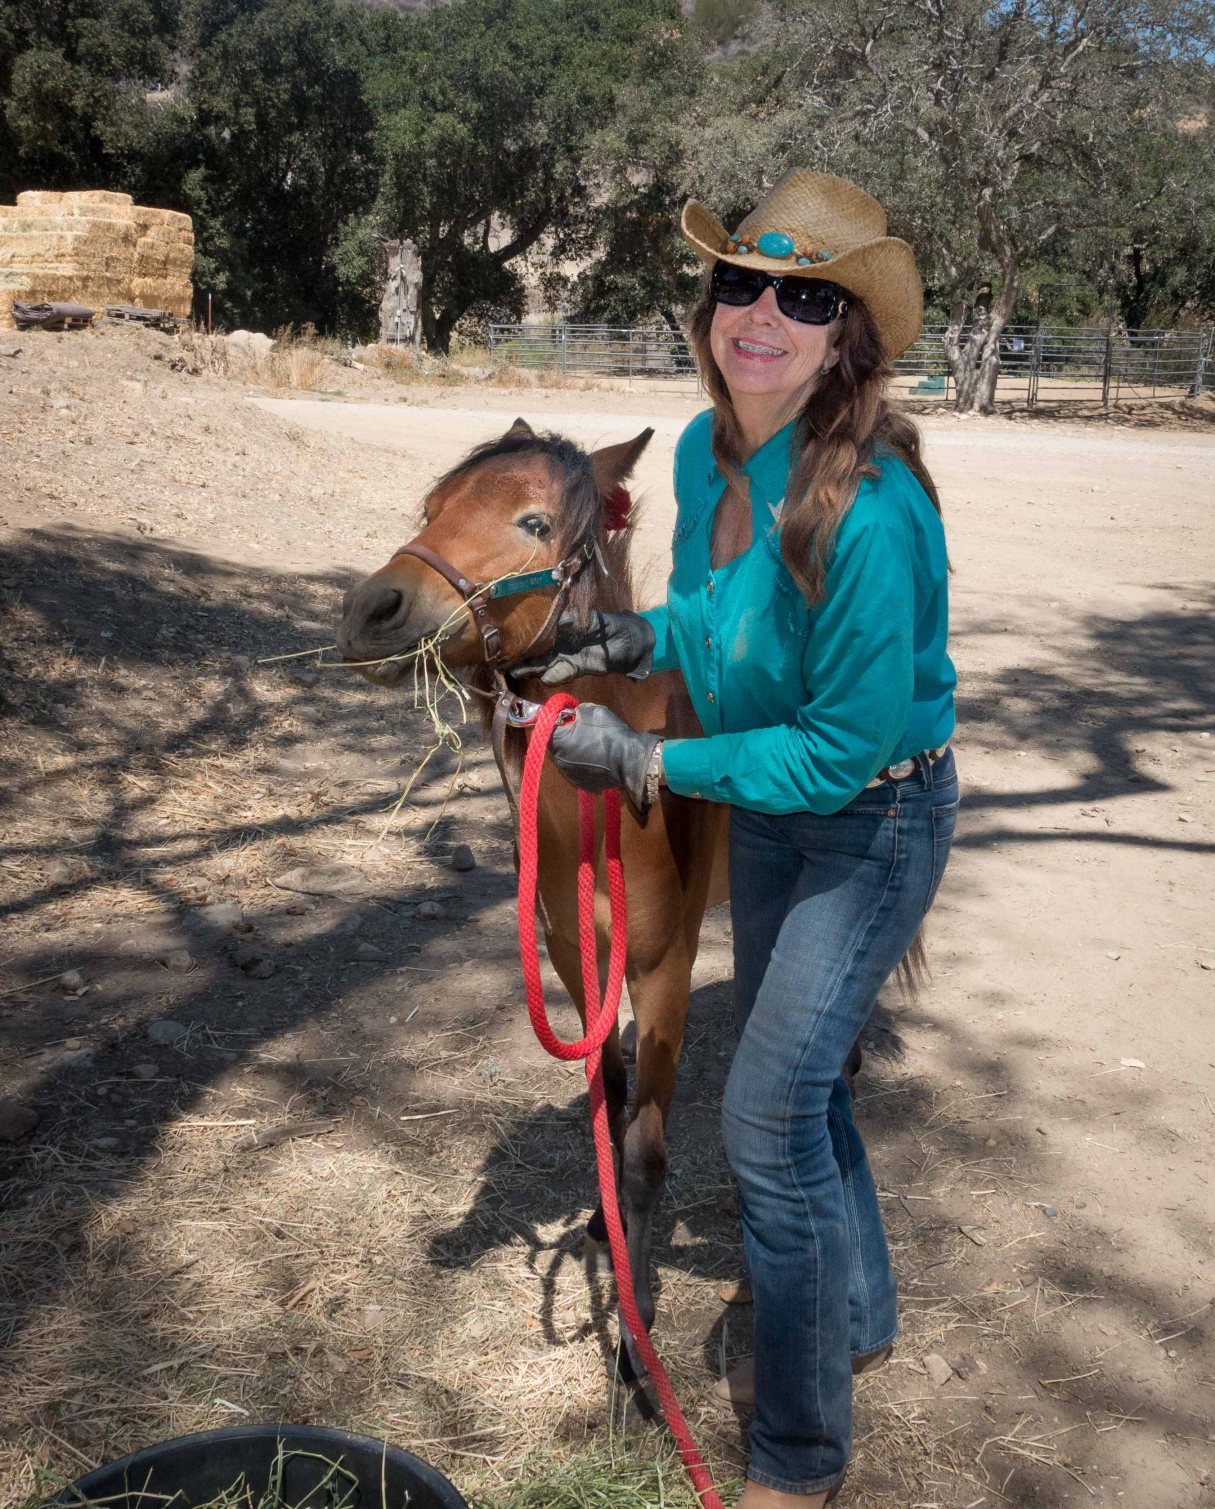 Leslie and Sonny Boy, a long legged pony